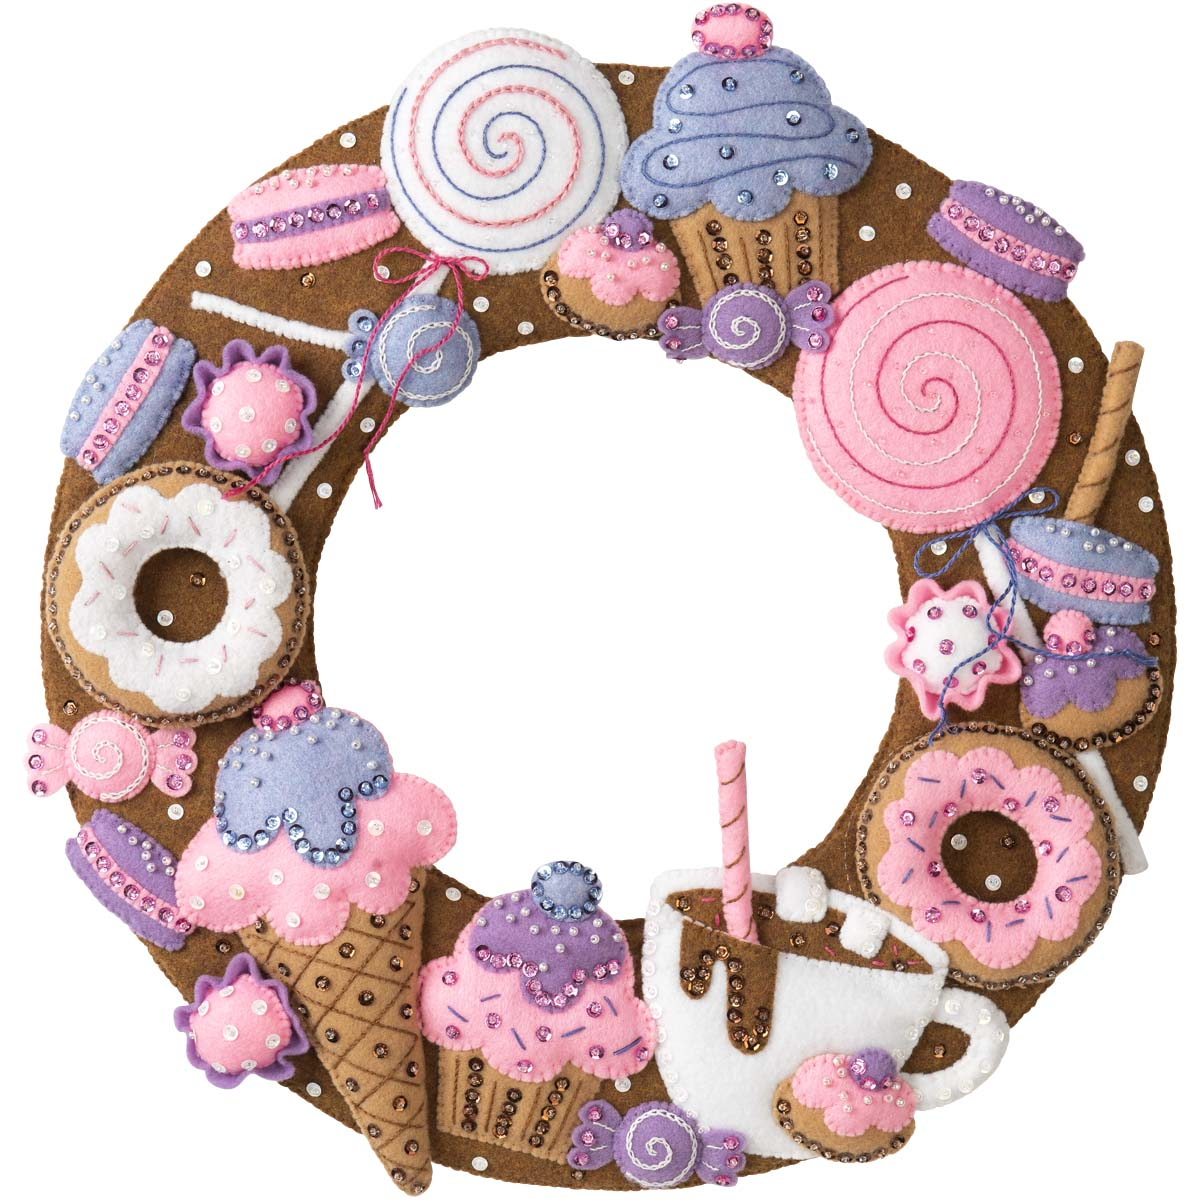 Bucilla ® Seasonal - Felt - Home Decor - Sweet Treats Wreath - 89273E